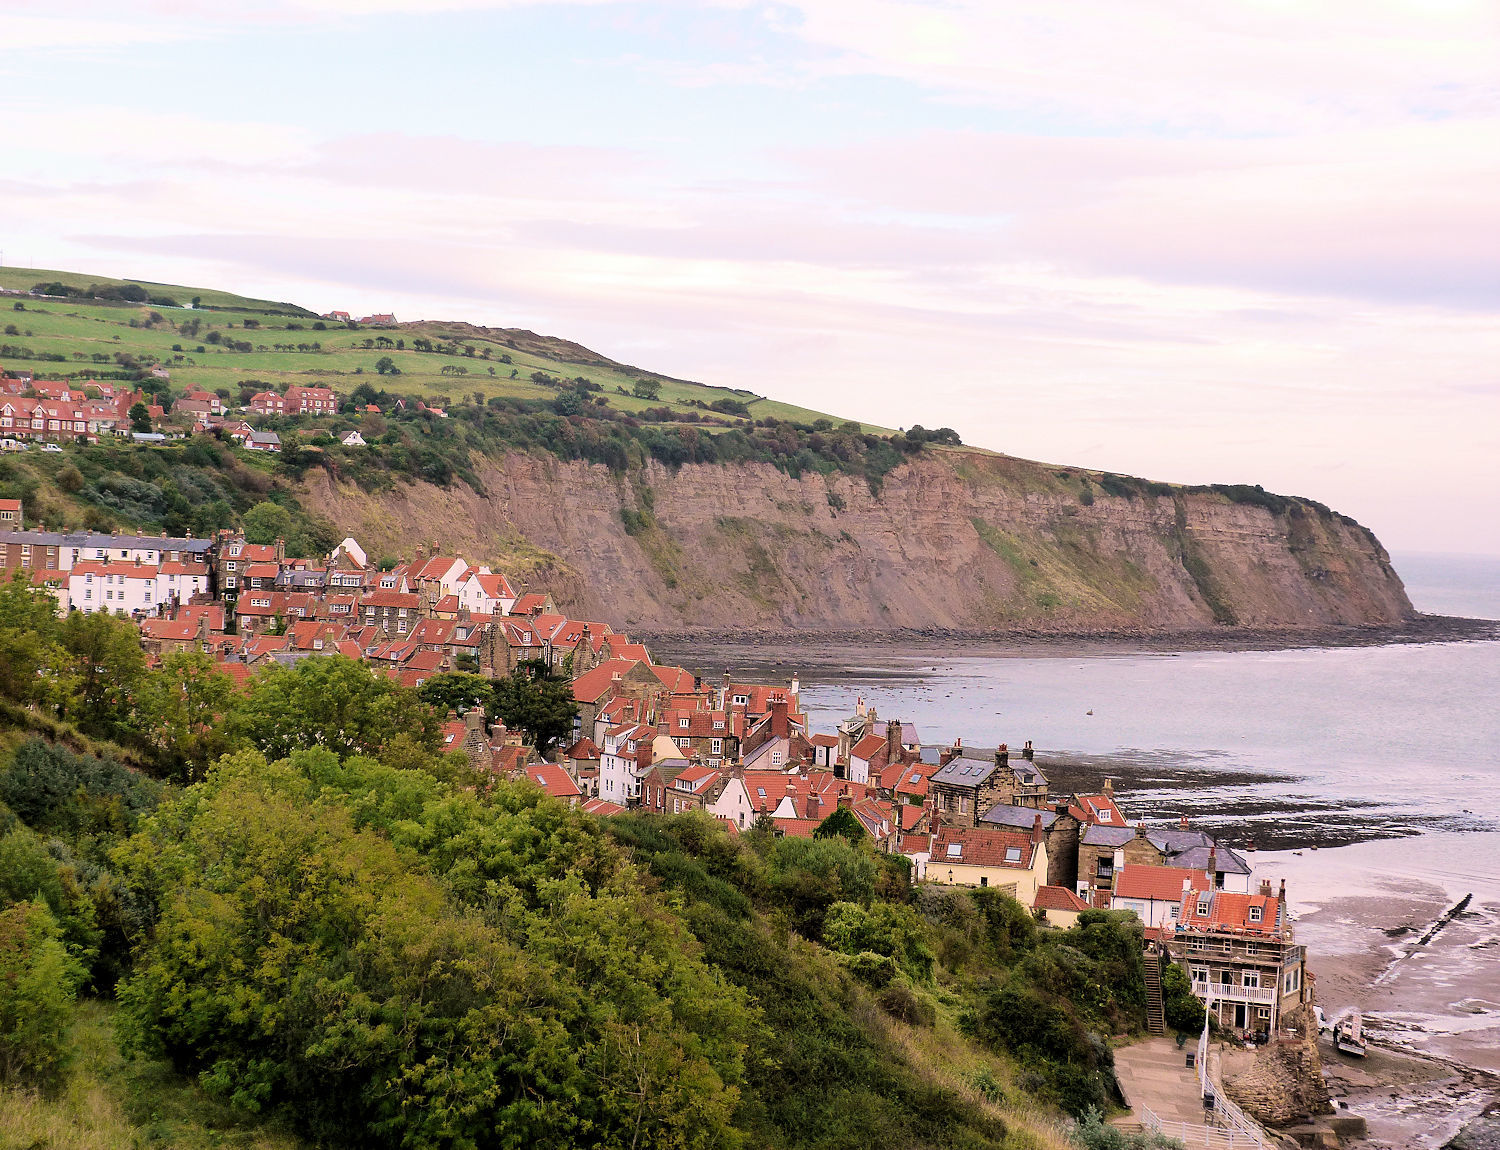 Robin Hood's Bay from Cleveland Way